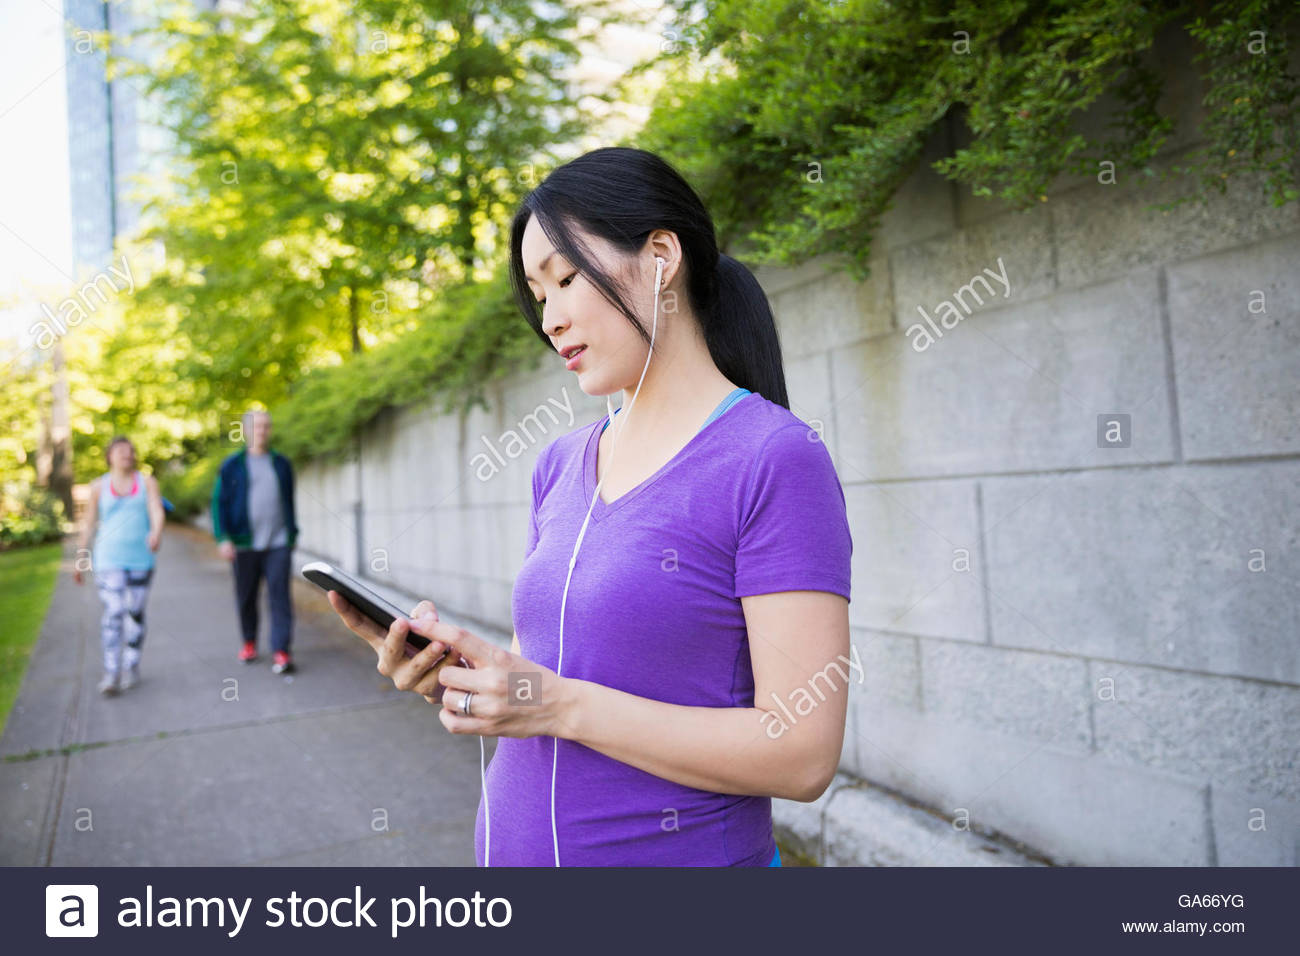 Pregnant woman with headphones using cell phone on city sidewalk - Stock Image